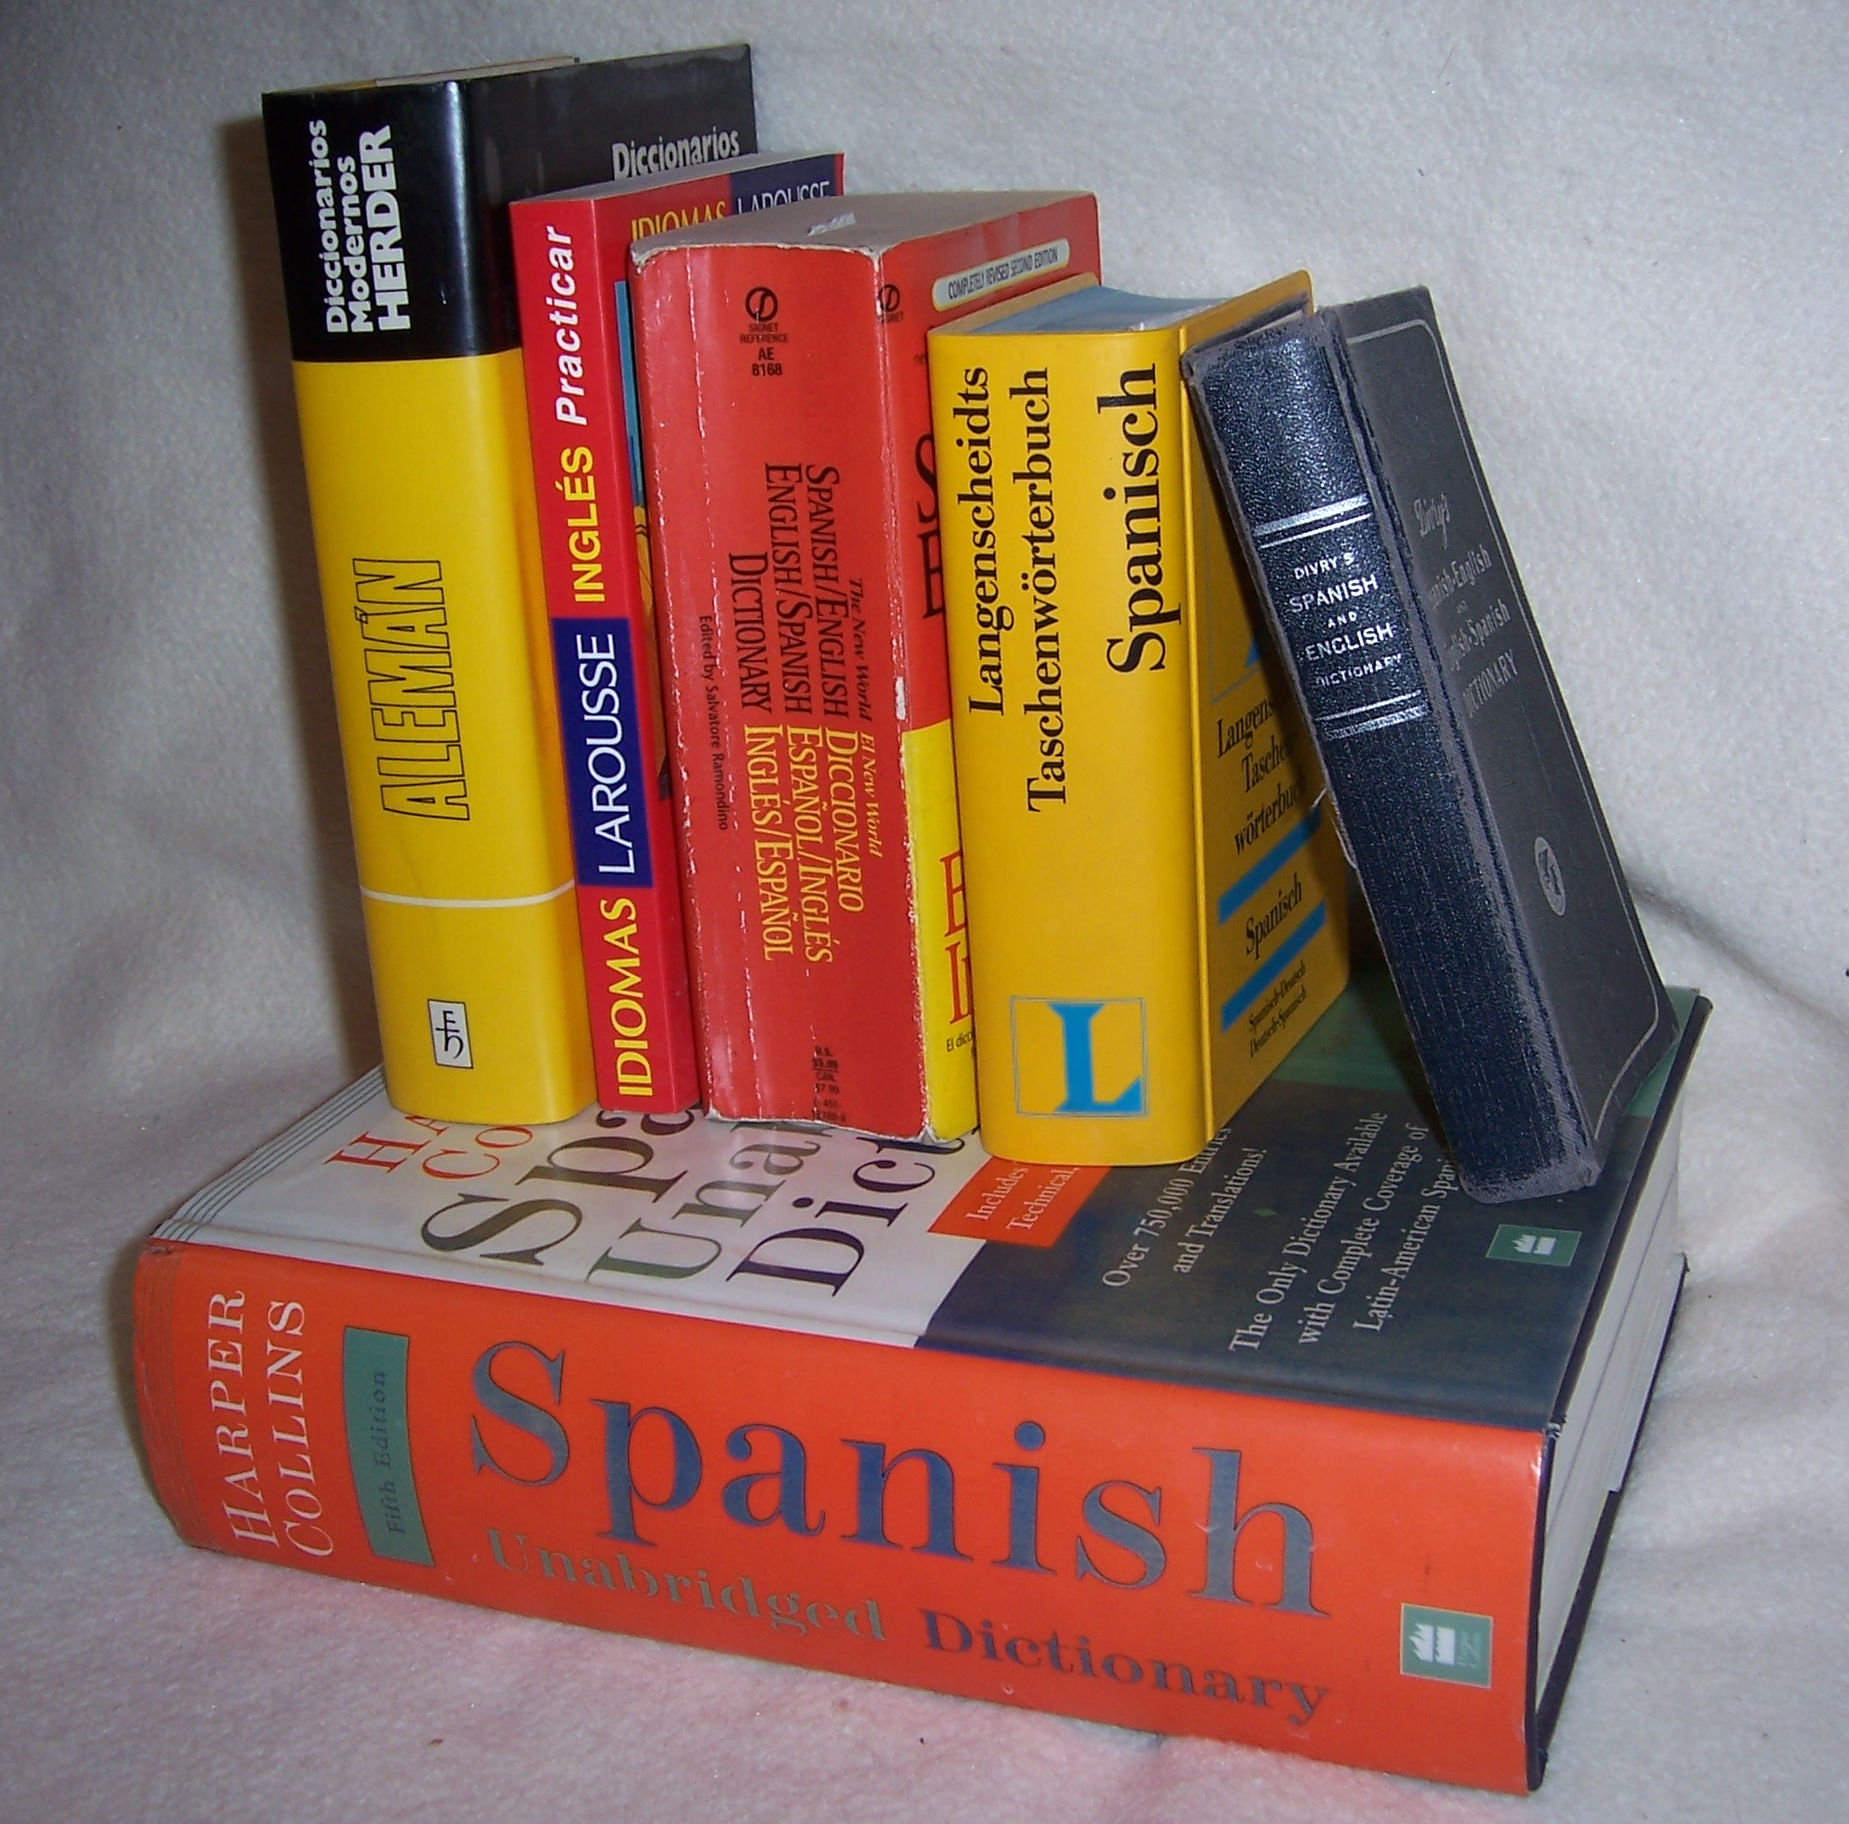 Spanish dictionary books